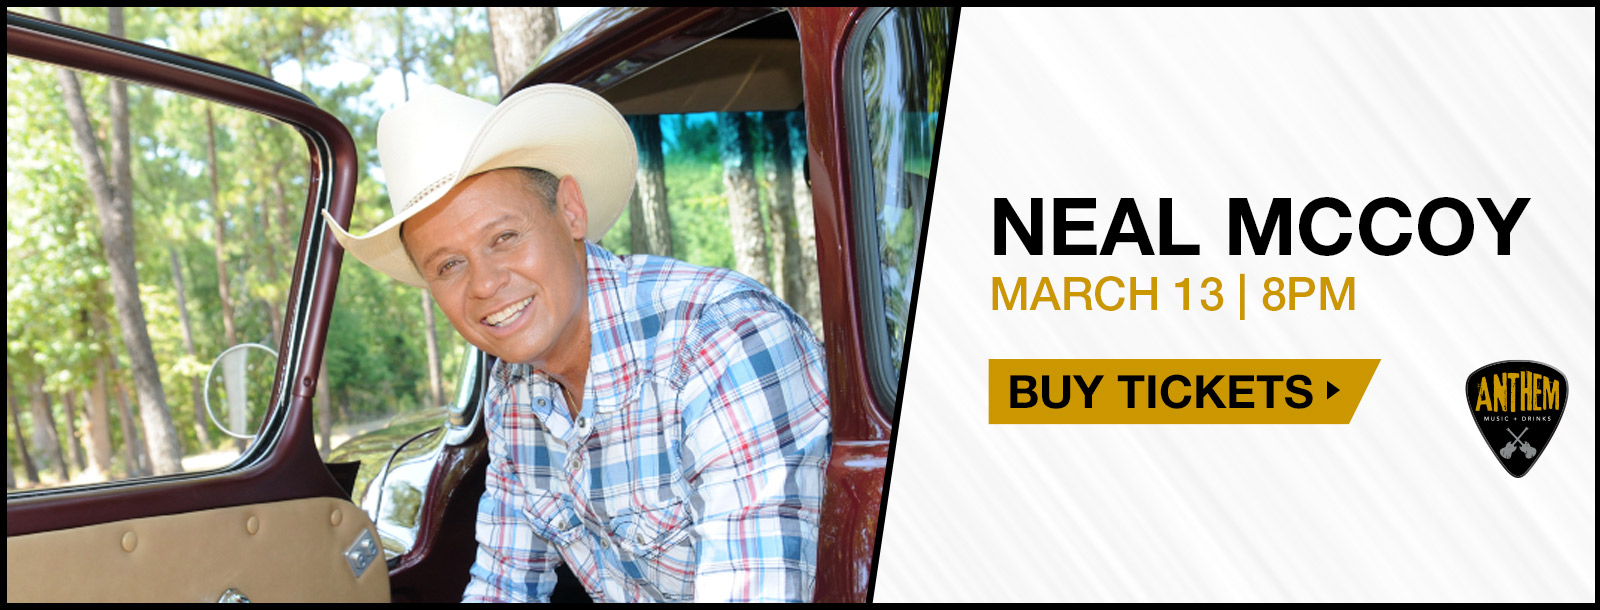 neal mccoy anthem sioux city events